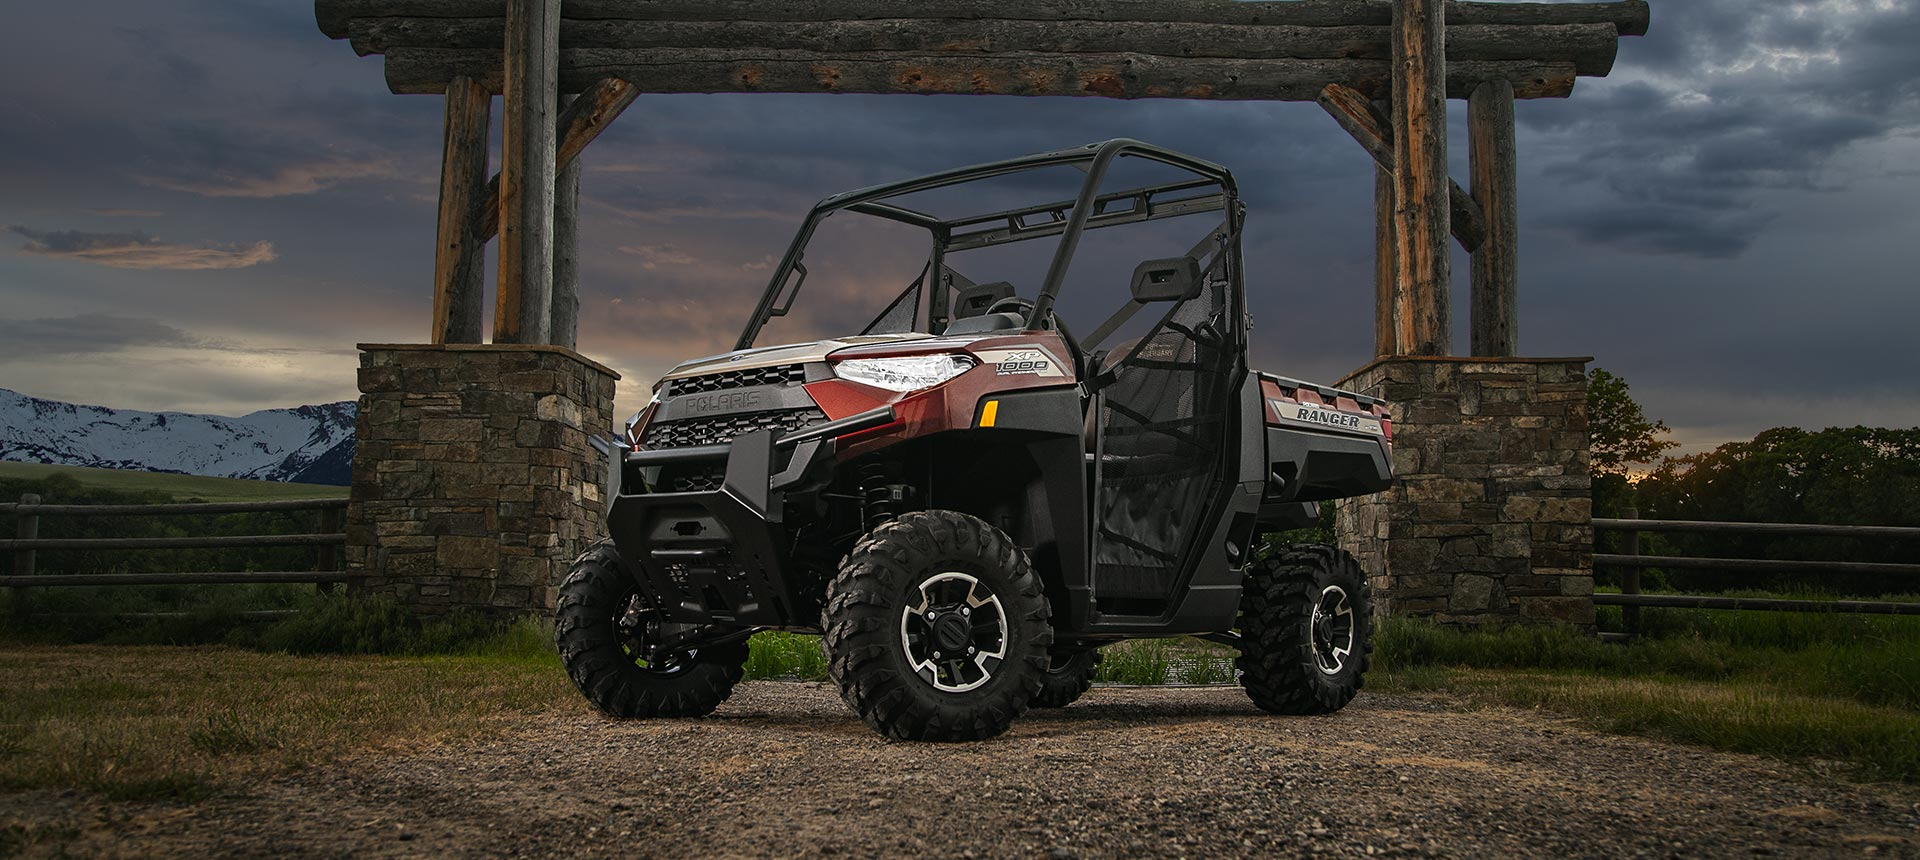 2019 Polaris Ranger XP 1000 EPS in Philadelphia, Pennsylvania - Photo 8